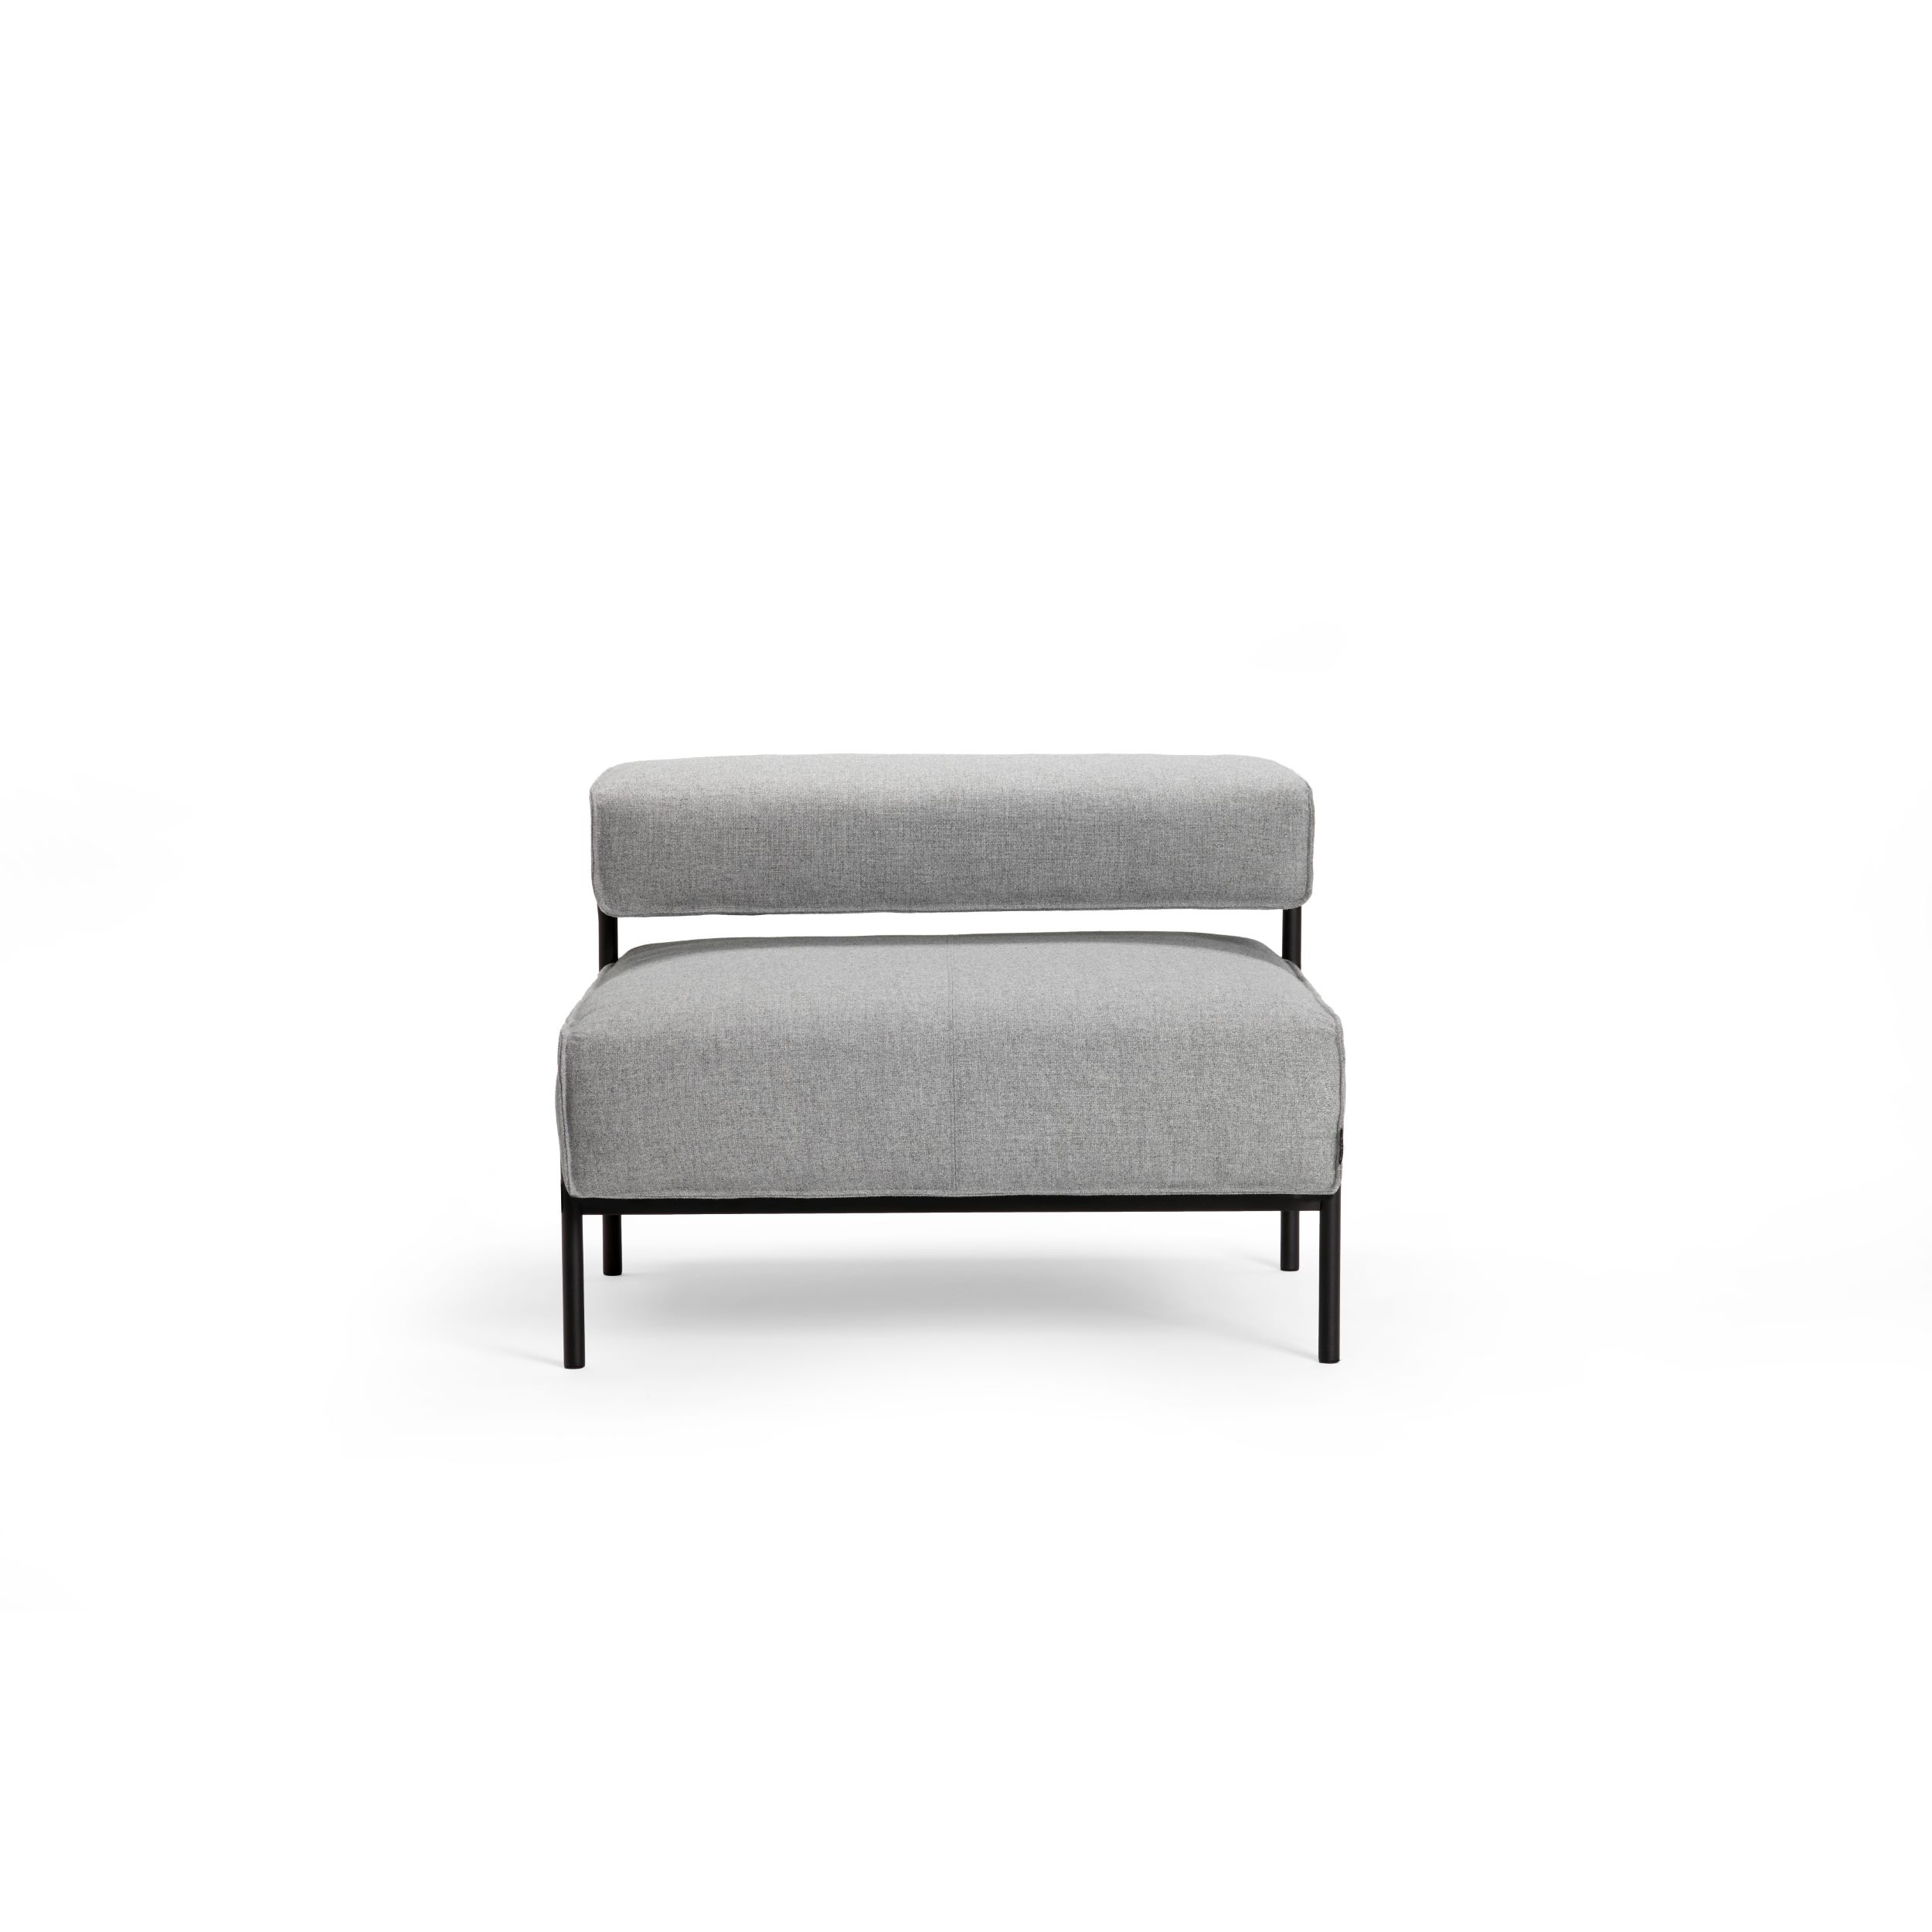 Lucy, B10 | Offecct For Lucy Grey Sofa Chairs (View 4 of 25)